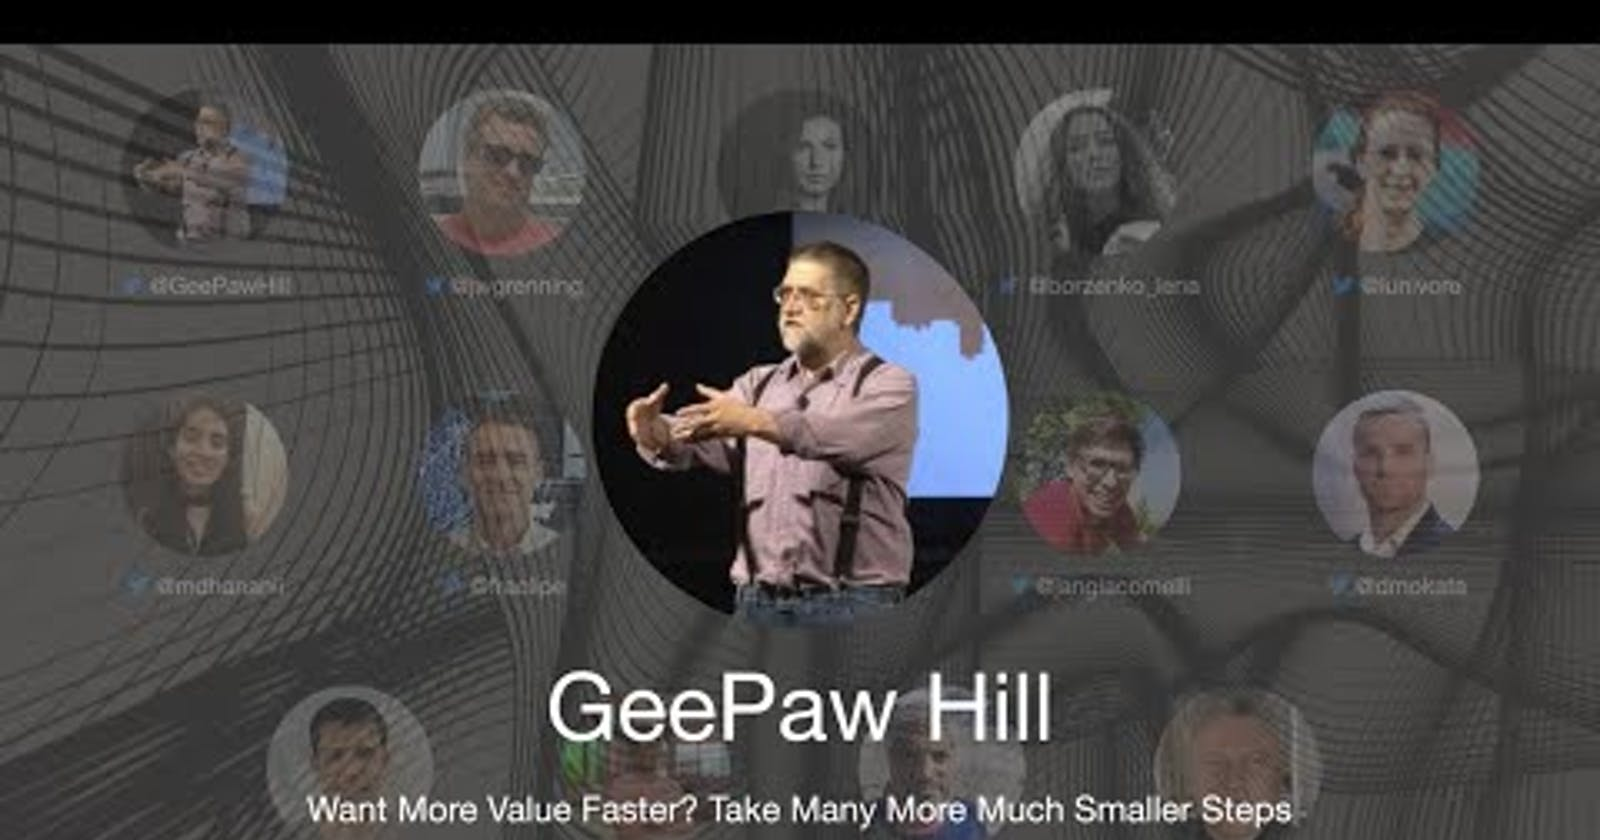 TDD Conference 2021 - Want More Value Faster? Take Many More Much Smaller Steps - GeePaw Hill